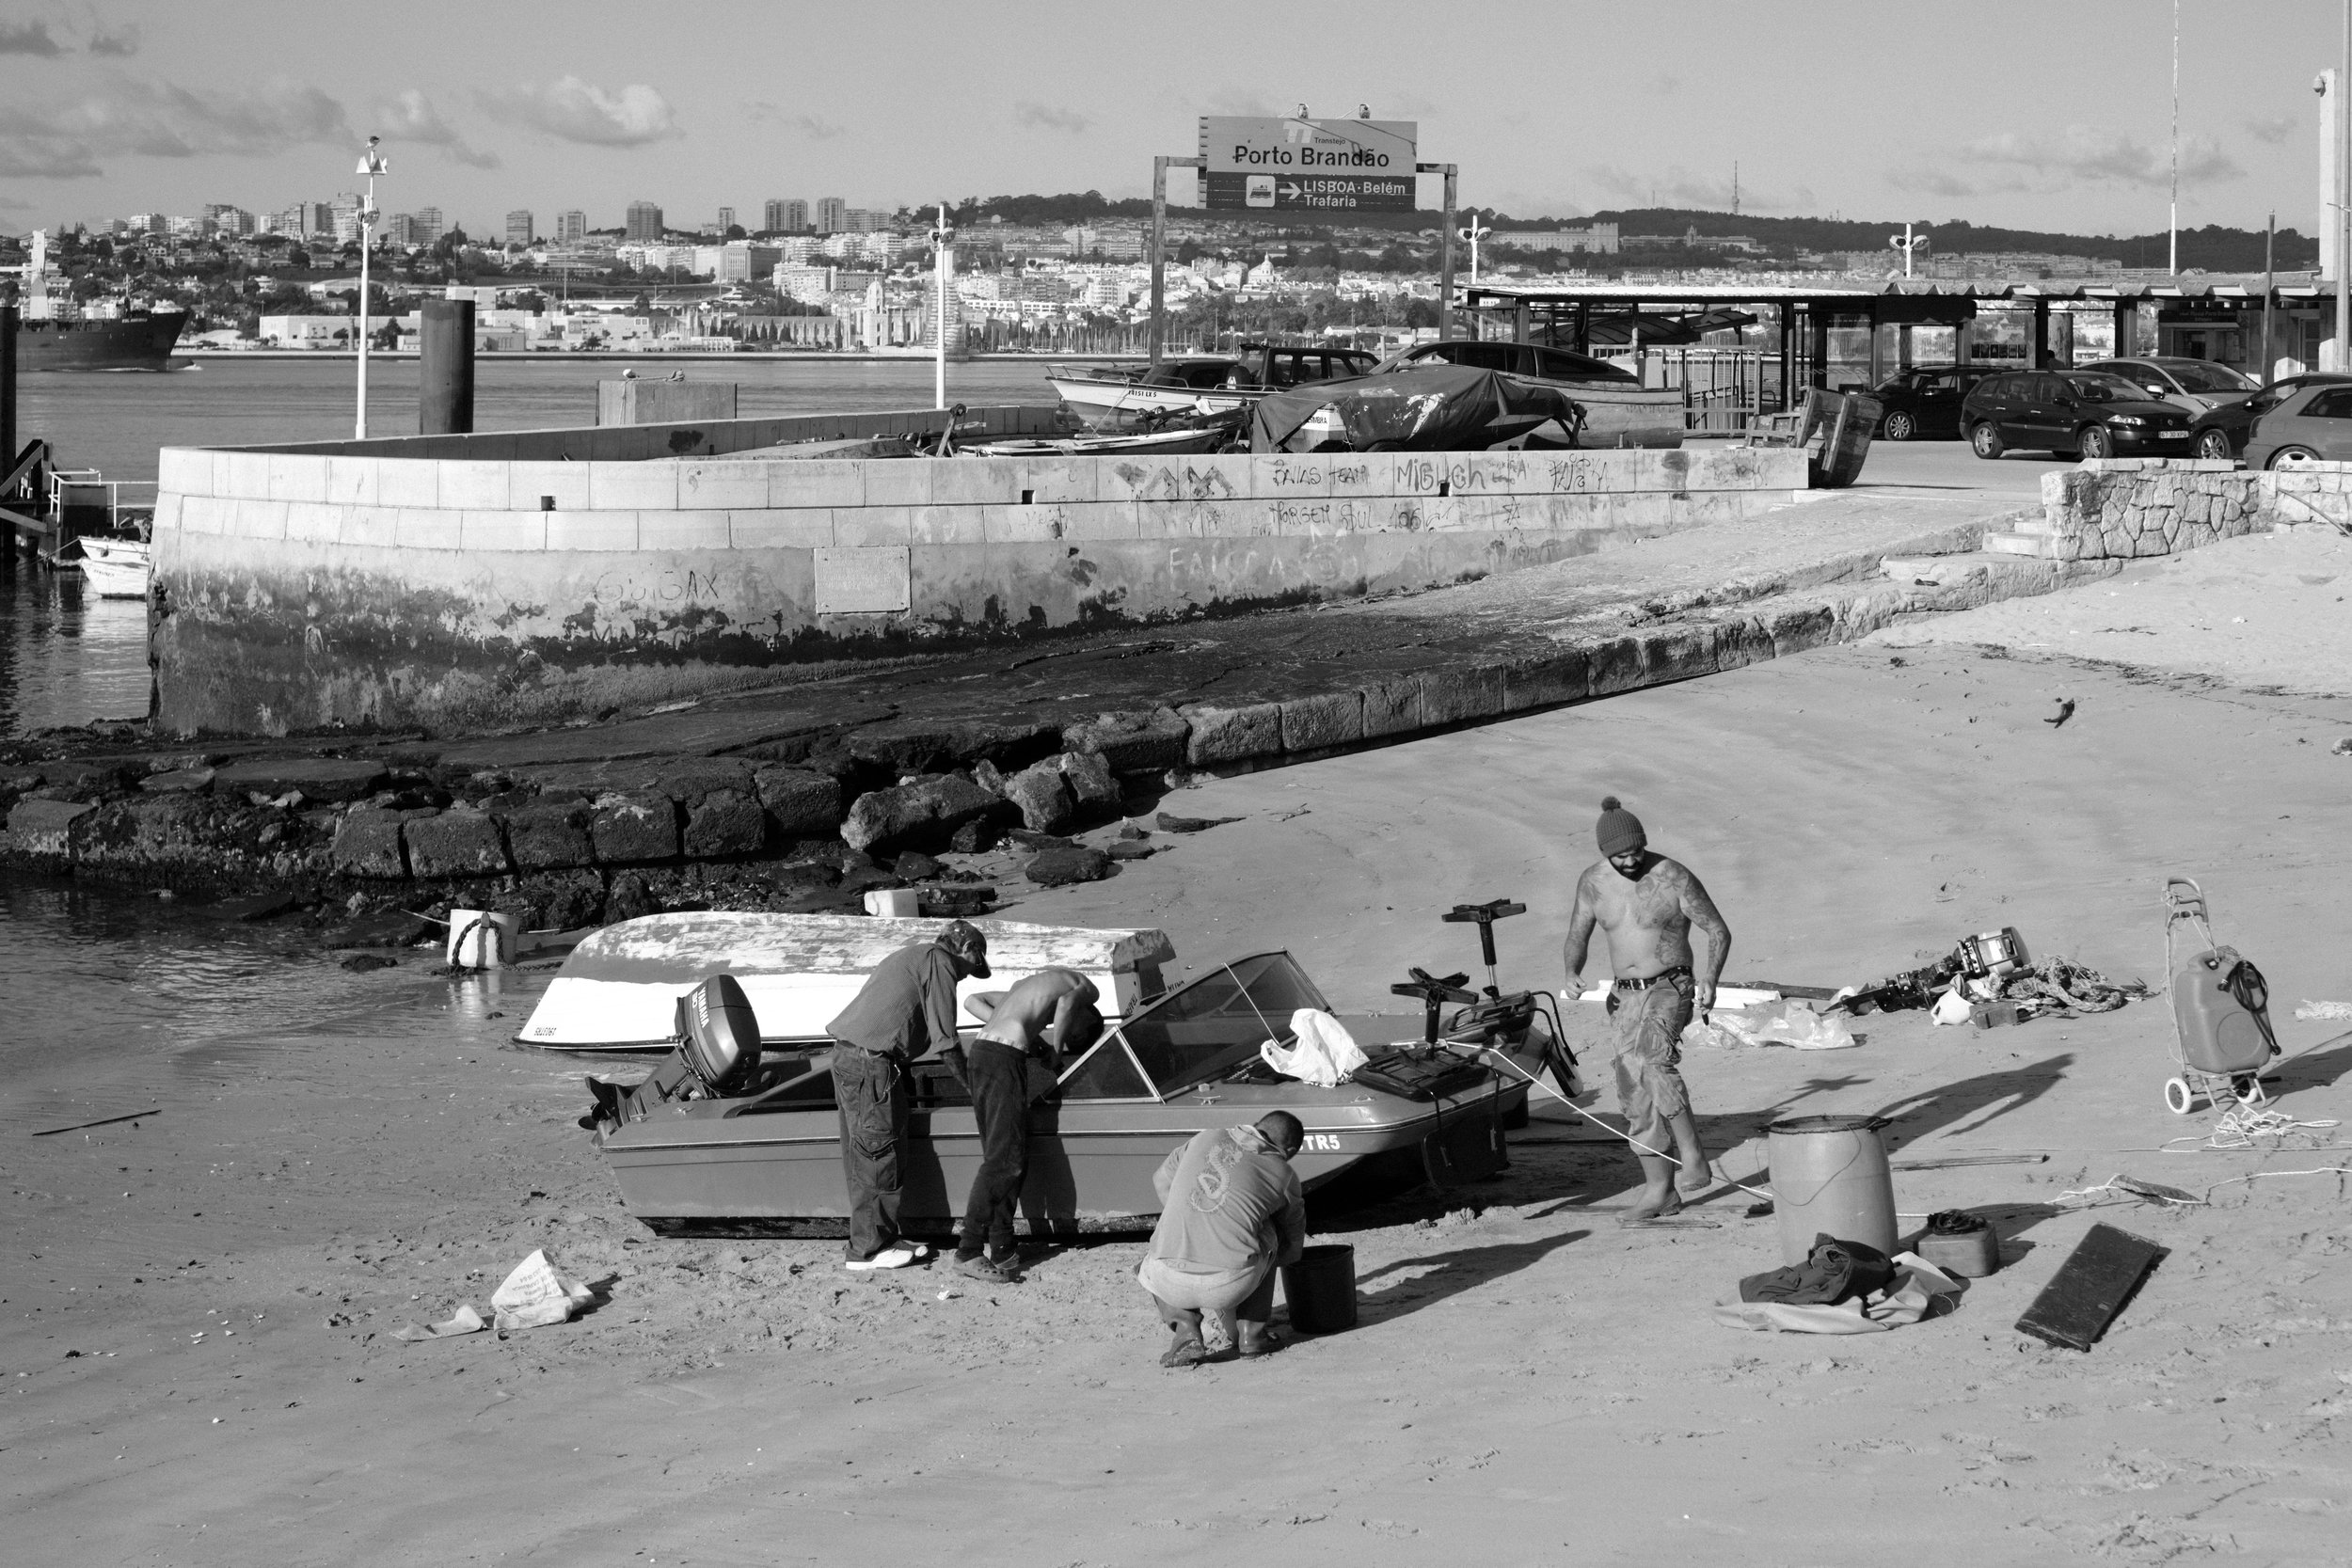 men are working around a small speedboat on a beach near the harbour in Lisbon Portugal